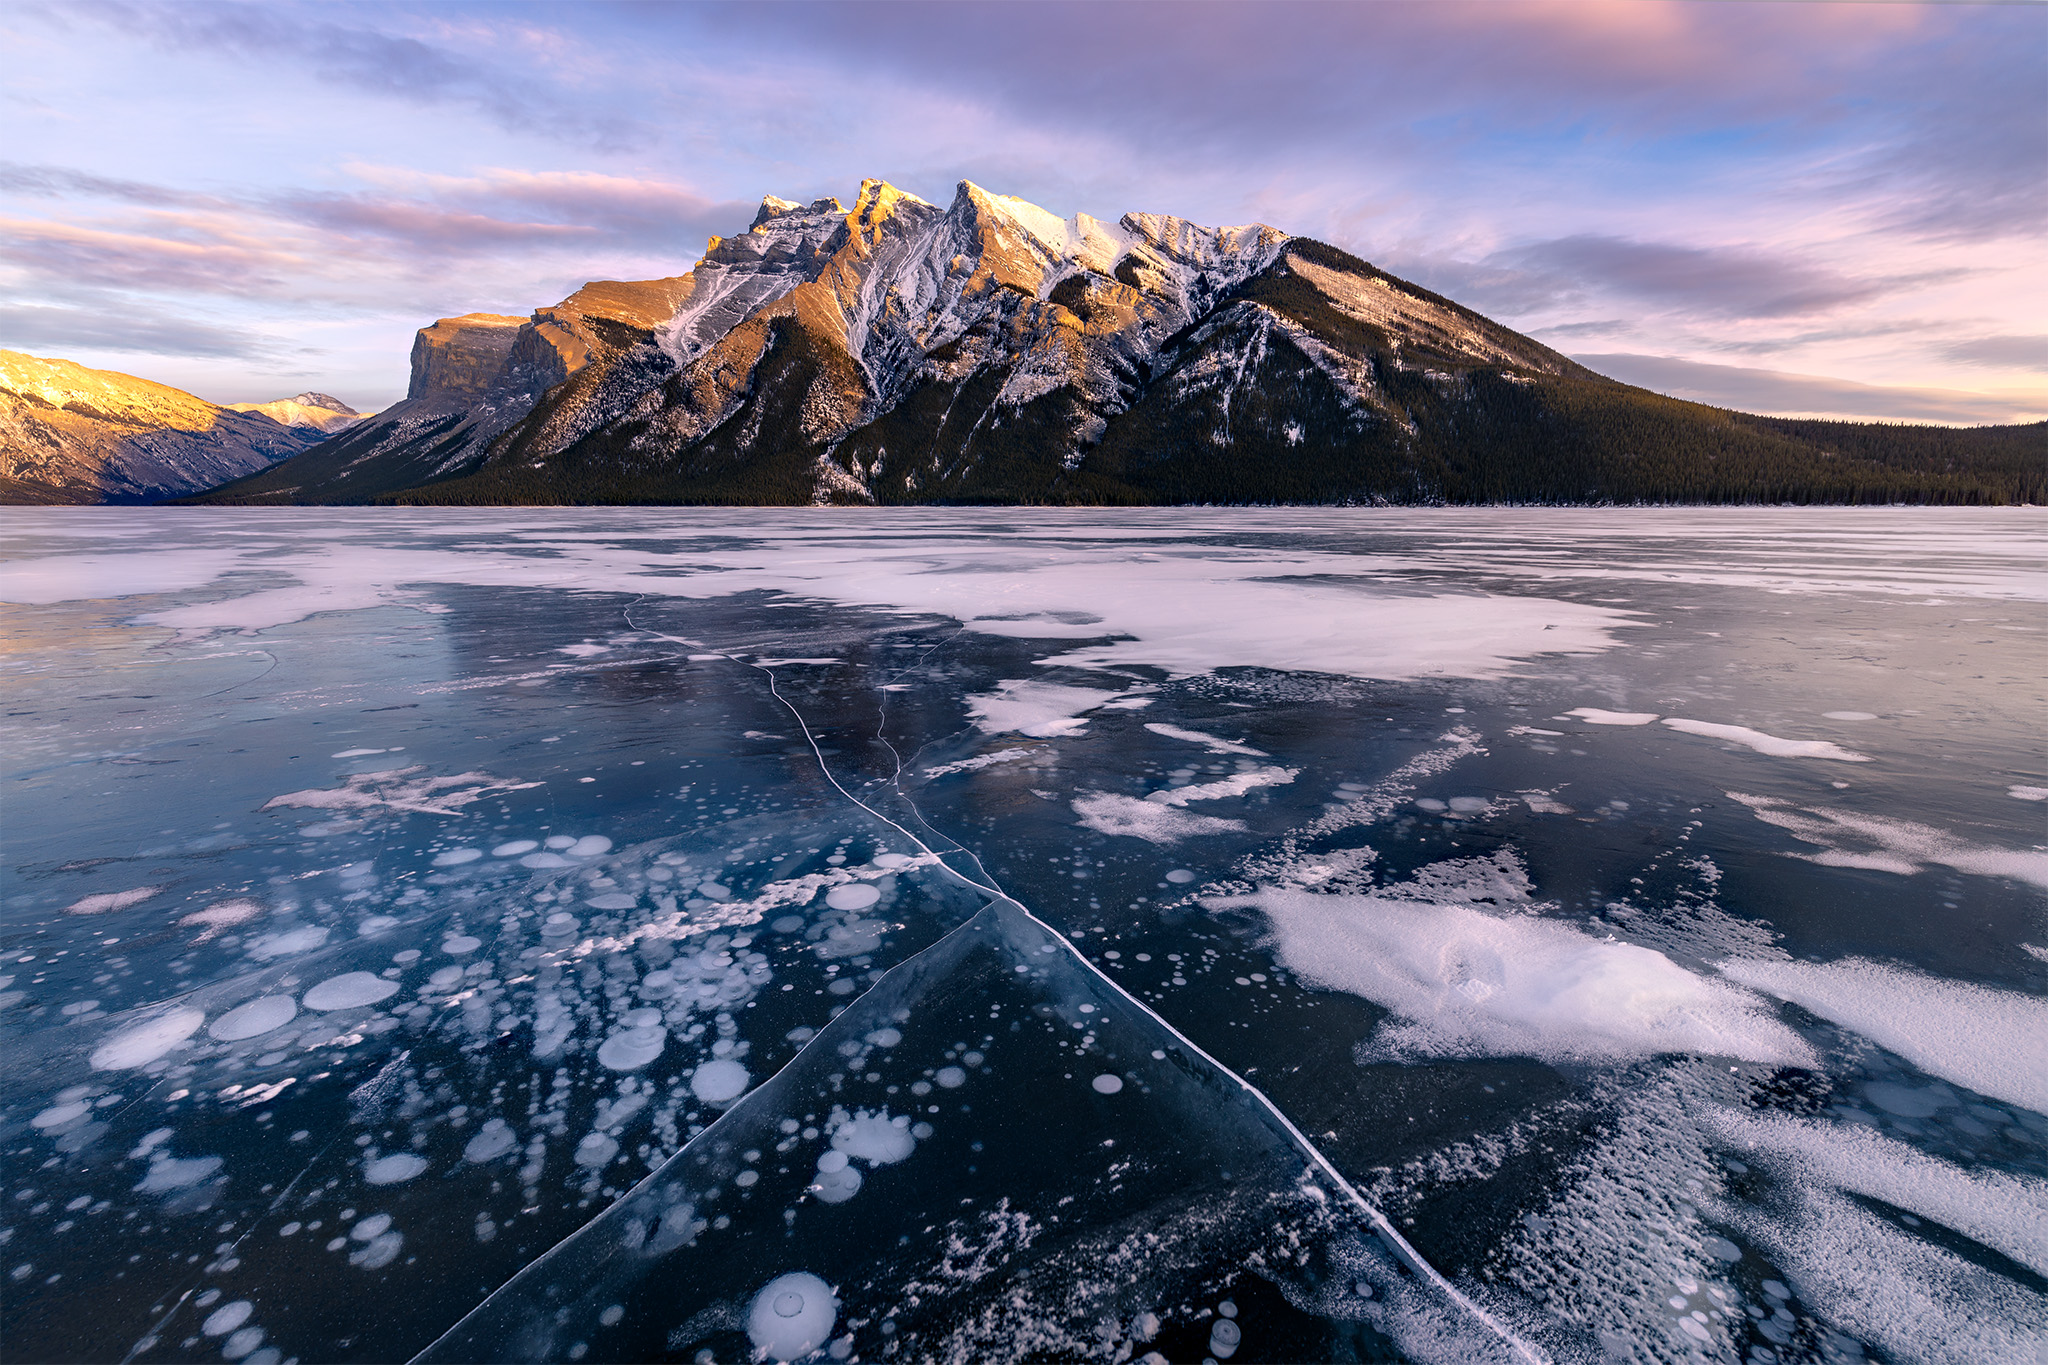 Landscape Photography of frozen bubbles at Lake Minnewanka in the Canadian Rockies